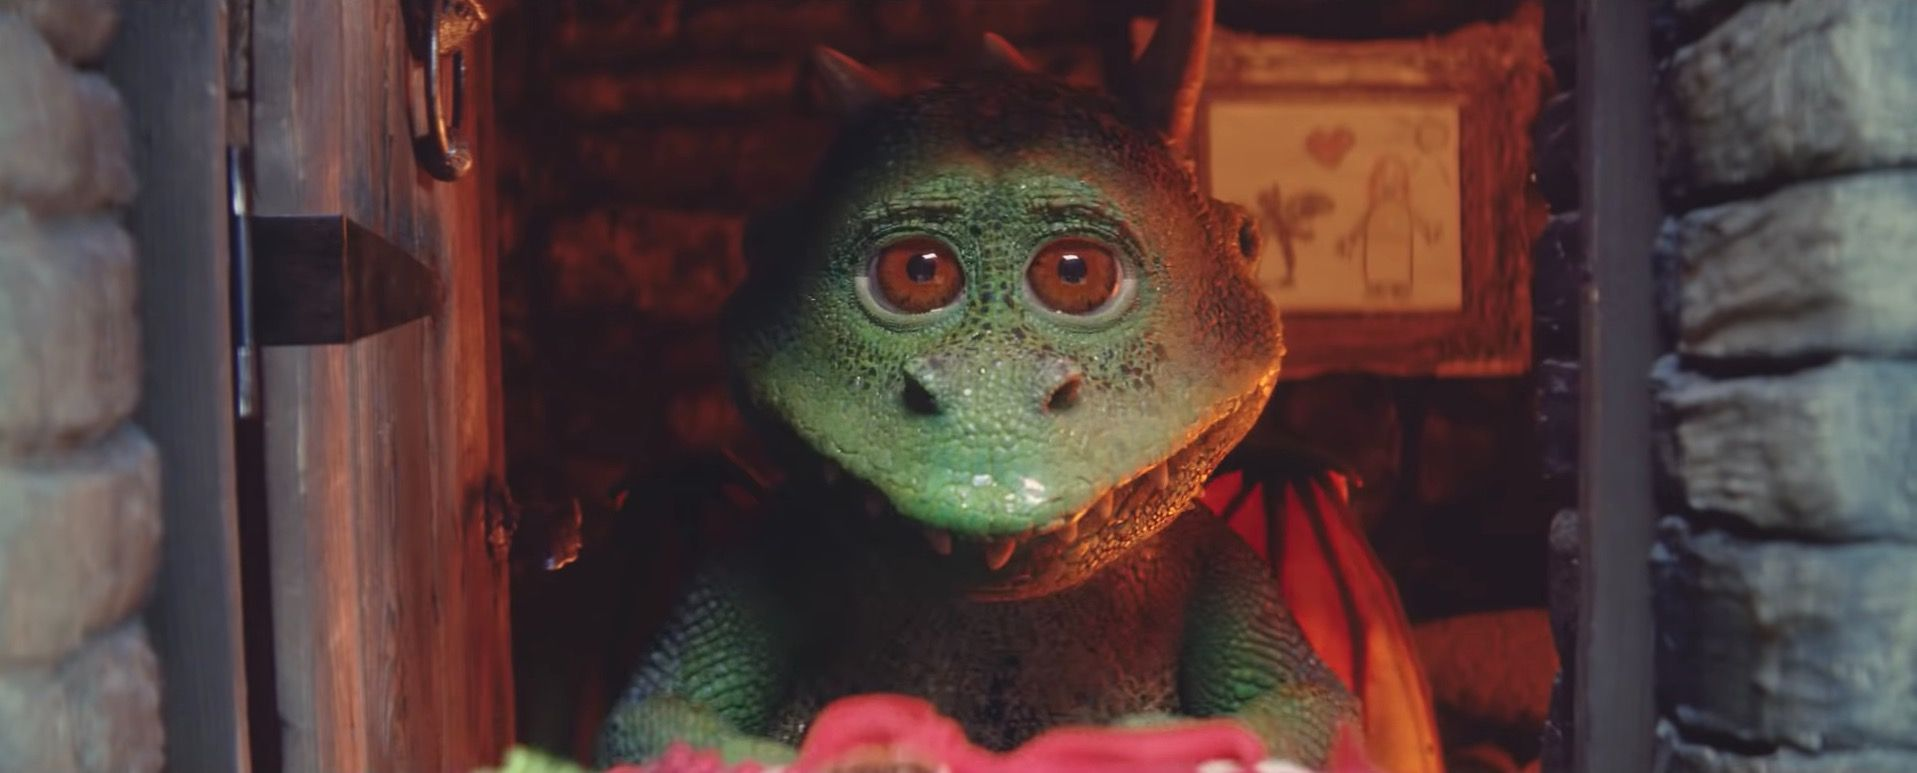 Watch: The John Lewis Christmas advert with over-excited Edgar the dragon